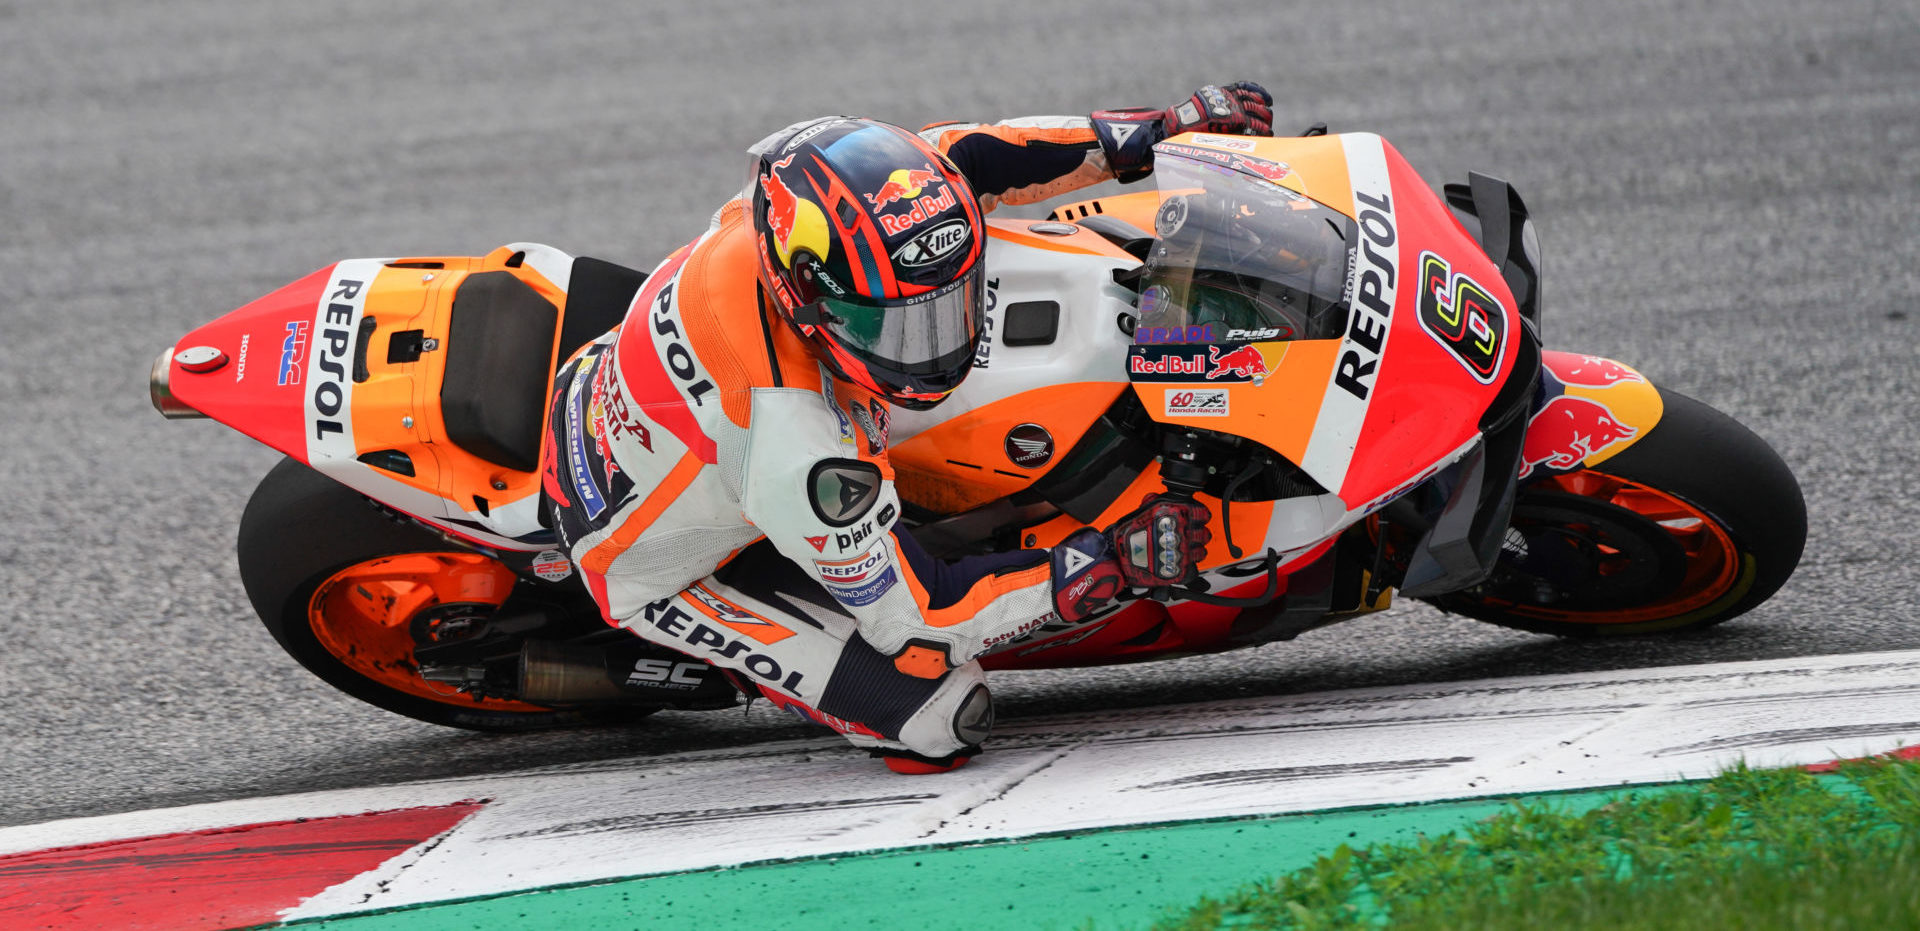 Stefan Bradl (6), as seen at the Red Bull Ring in 2019. Photo courtesy Repsol Honda.